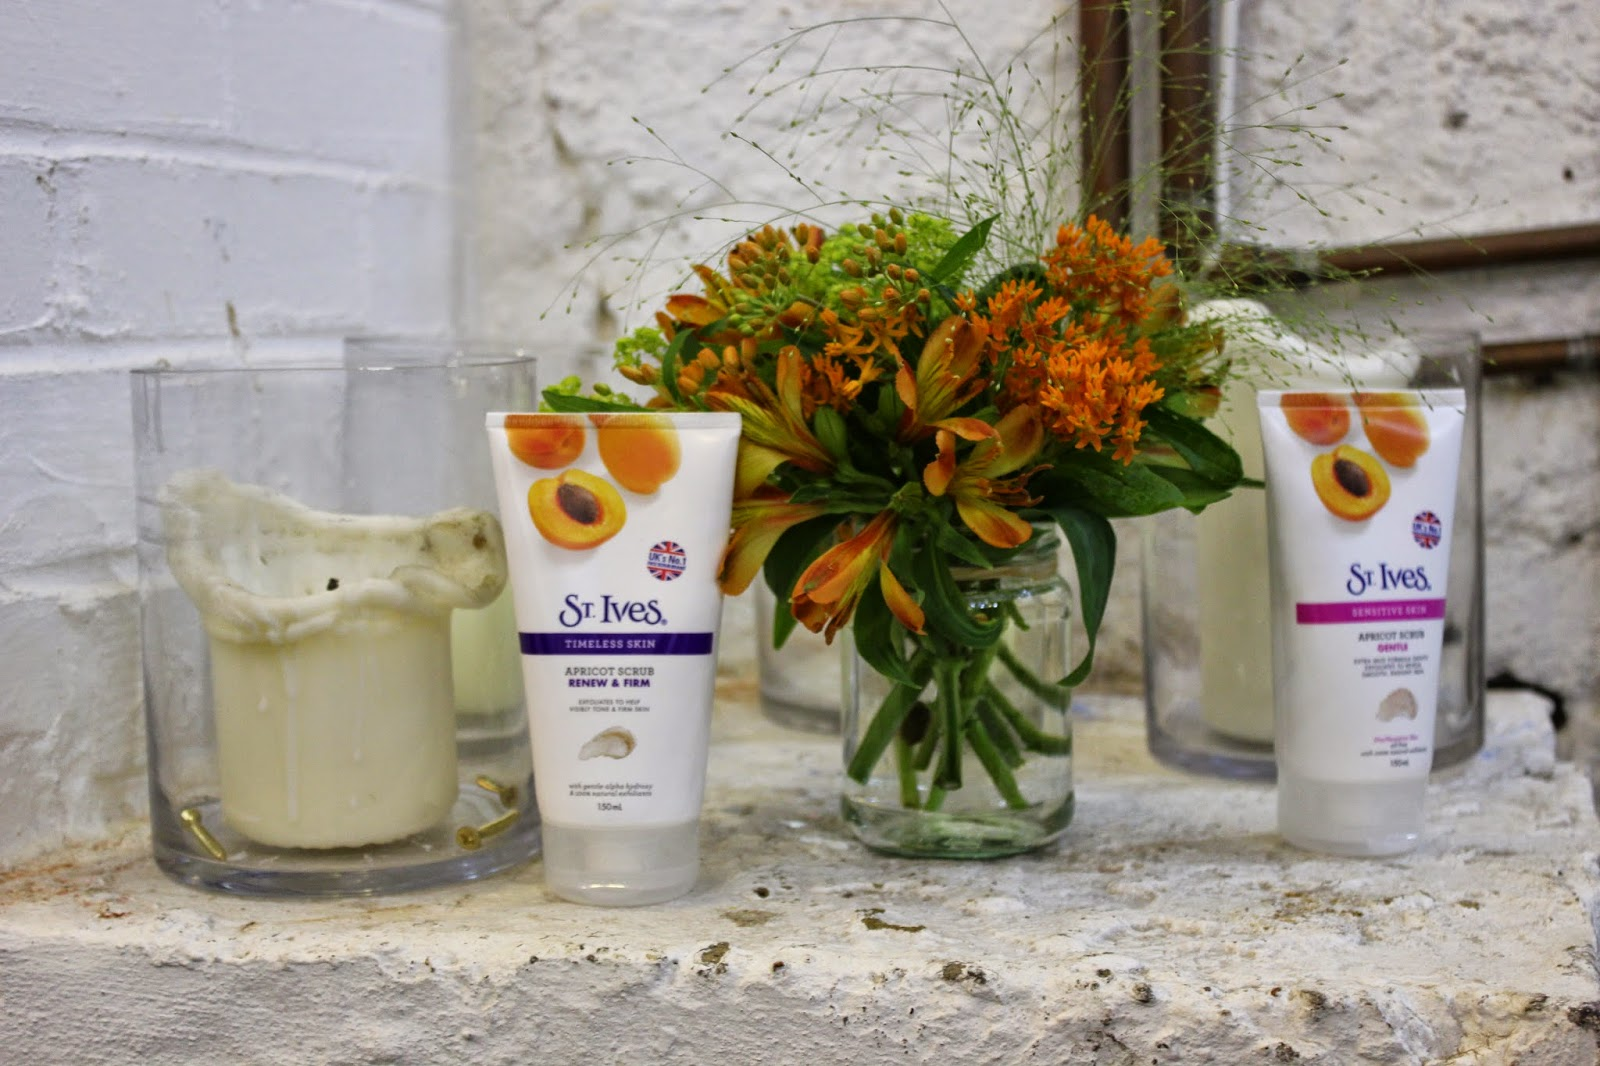 St Ives Skincare Candles